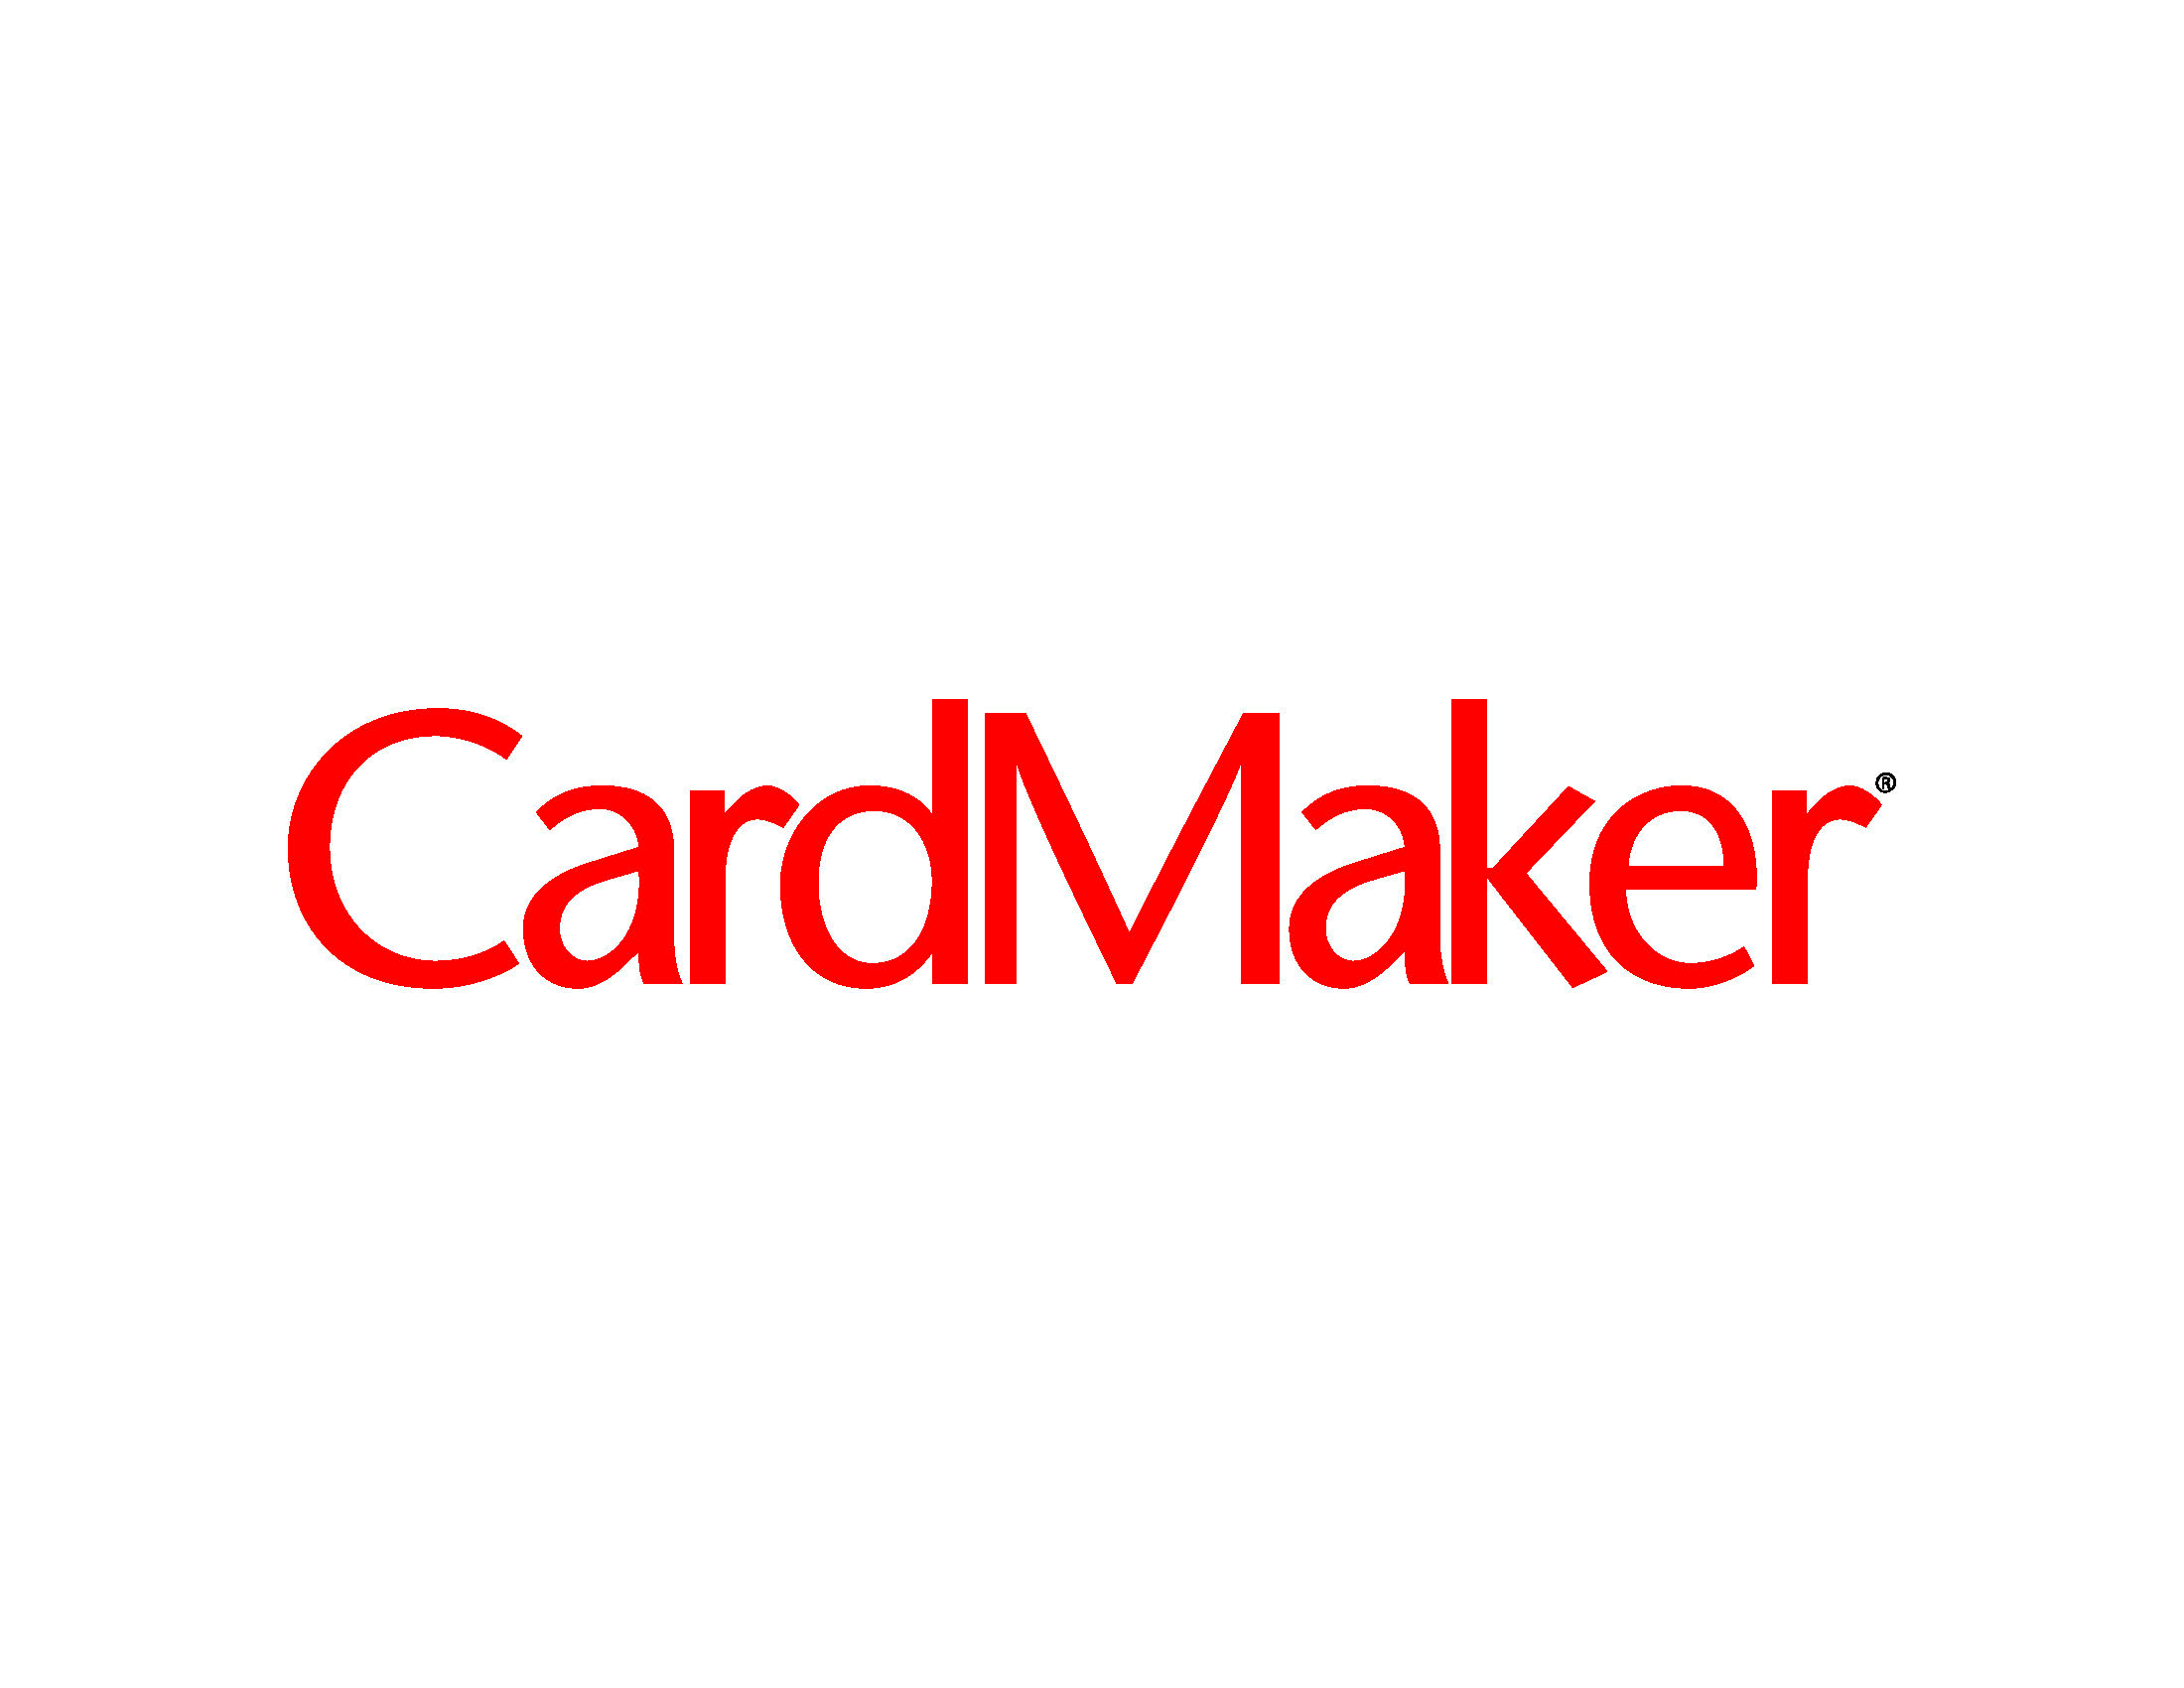 Card Maker logo